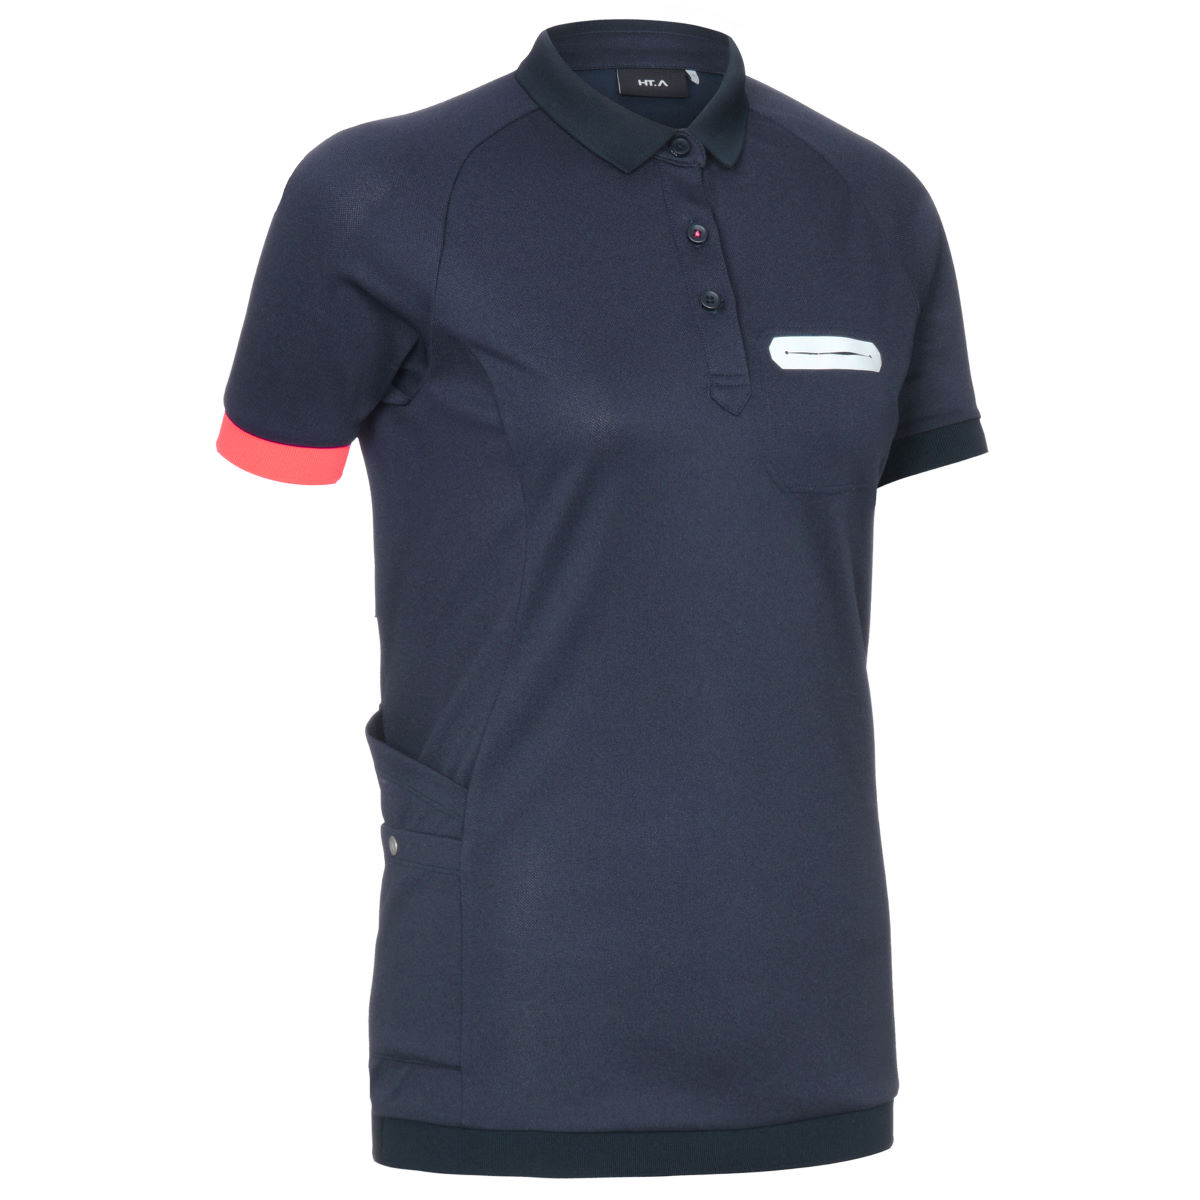 Polo Femme Primal Vaughan - S Bleu marine T-shirts